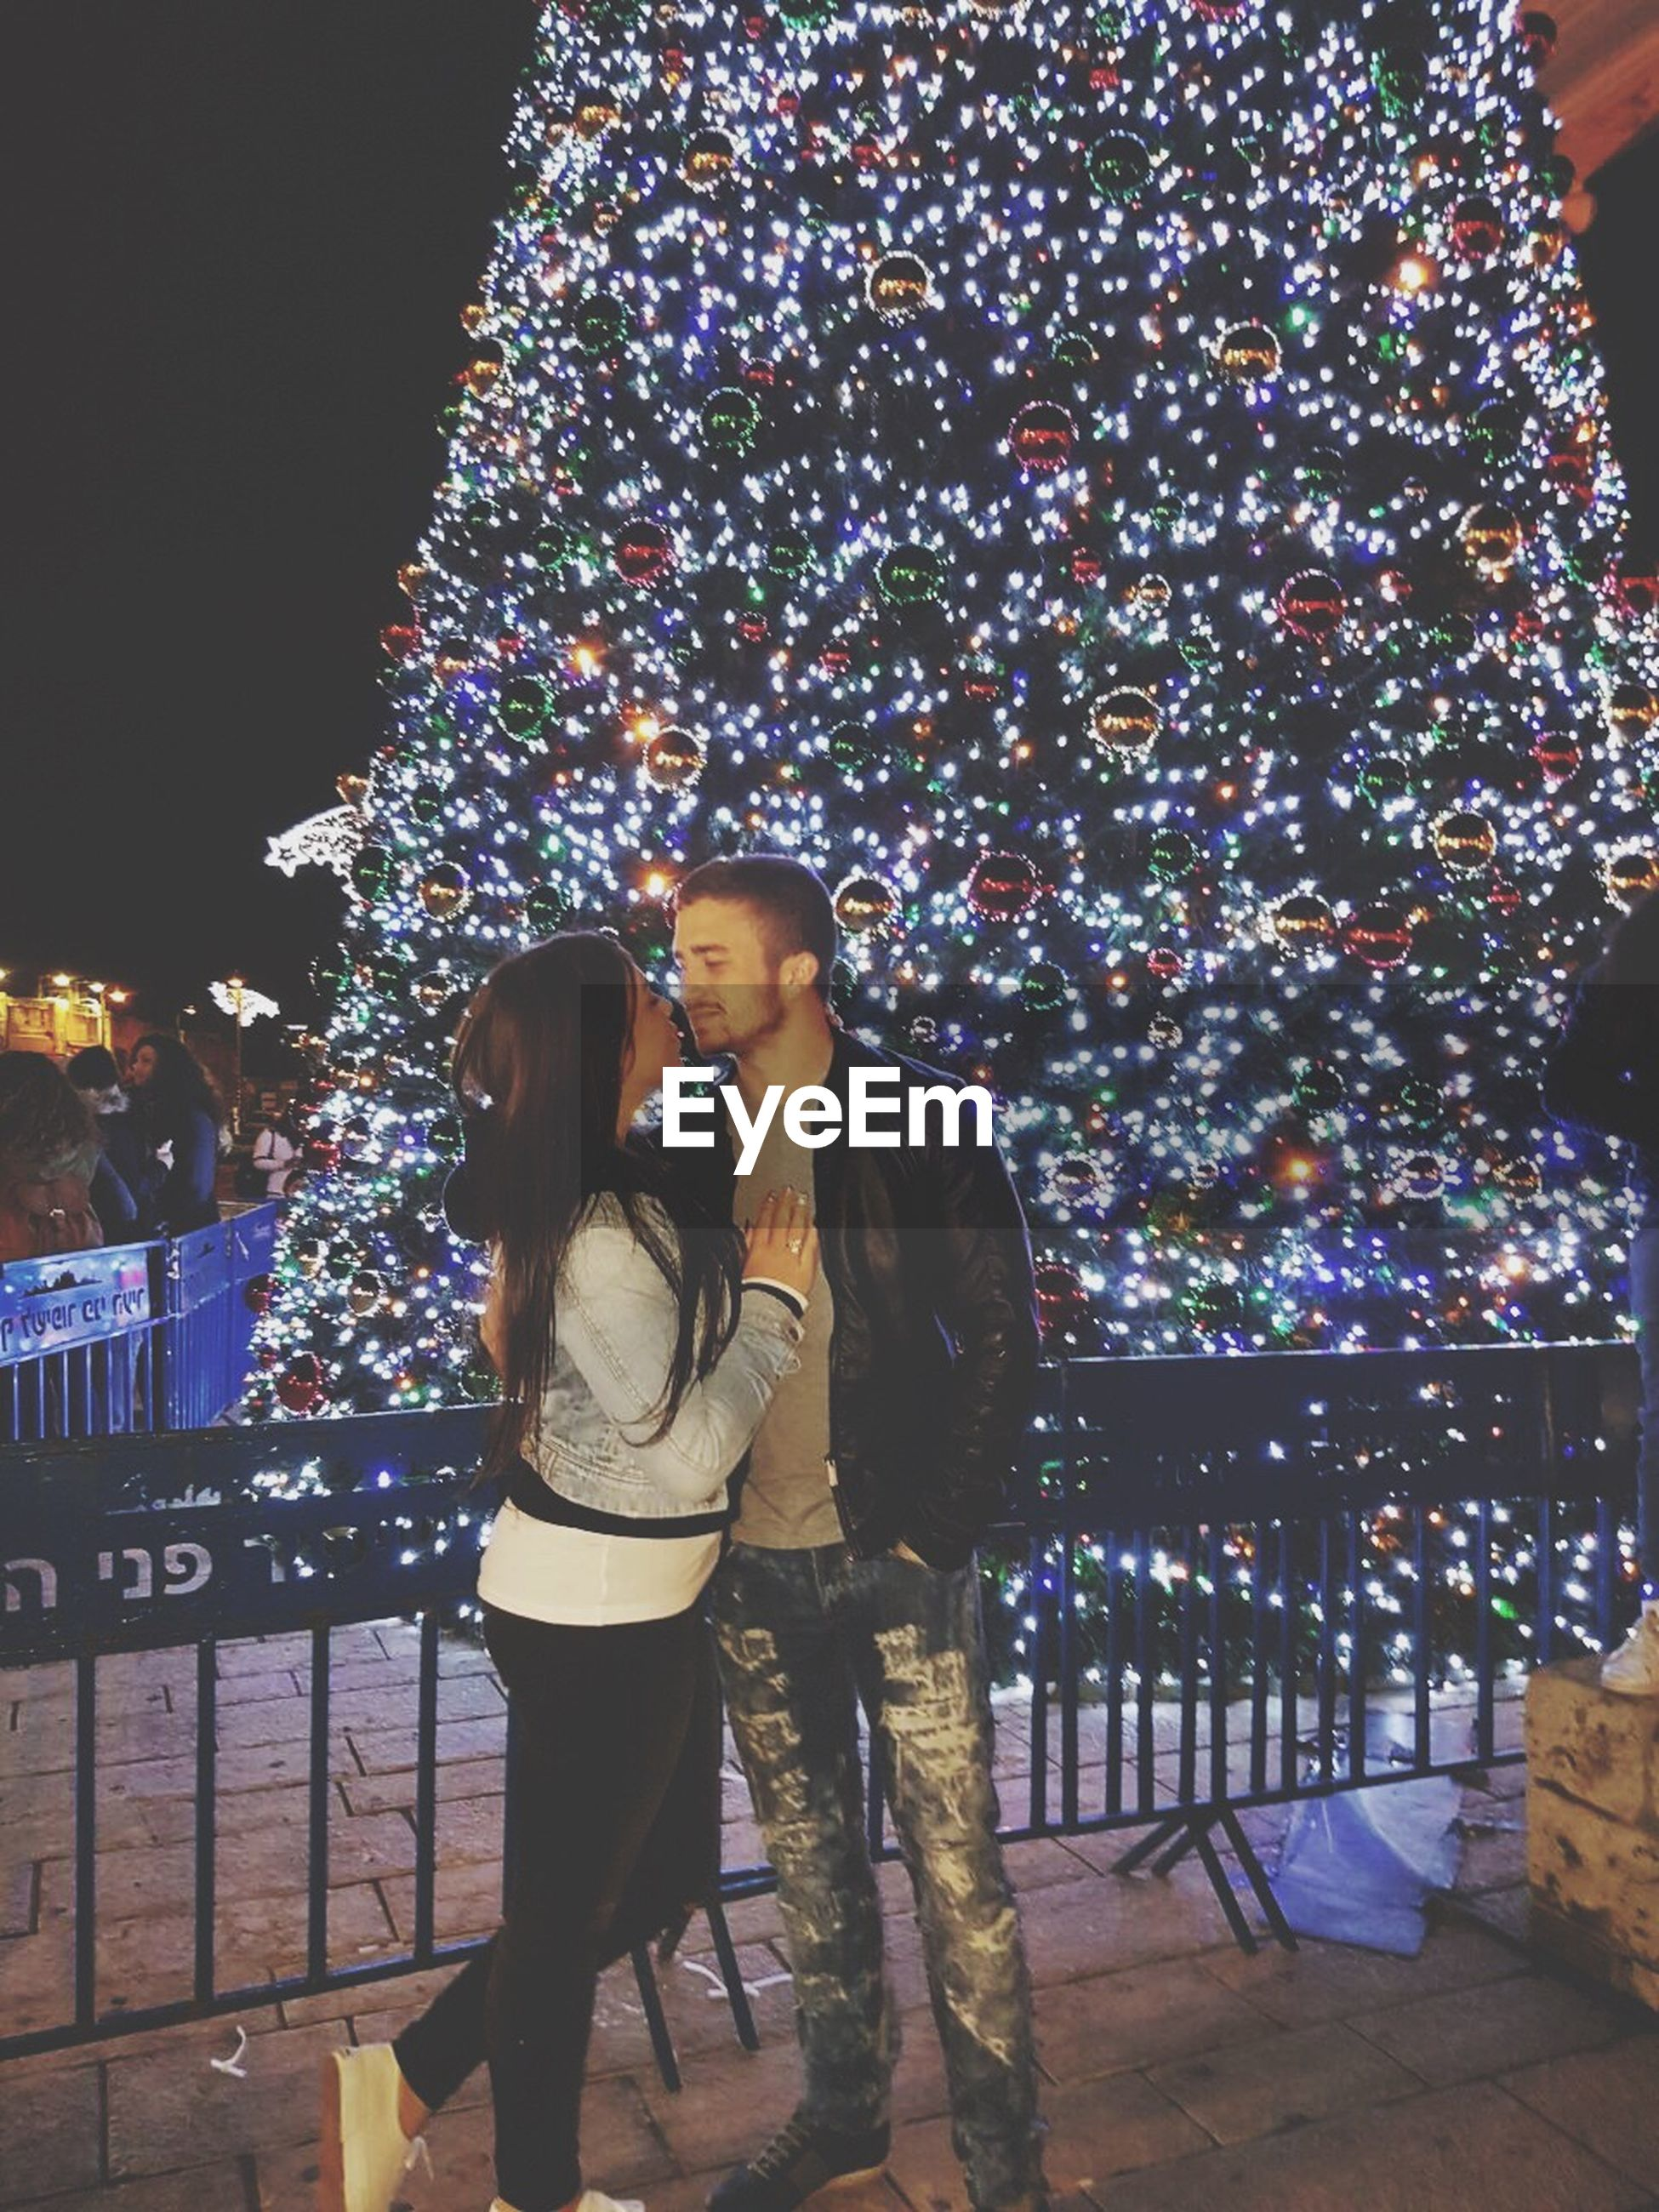 two people, night, christmas, lifestyles, illuminated, leisure activity, city, real people, young women, nightlife, party - social event, christmas decoration, christmas lights, celebration, adults only, beautiful woman, young adult, women, people, christmas tree, togetherness, outdoors, sky, adult